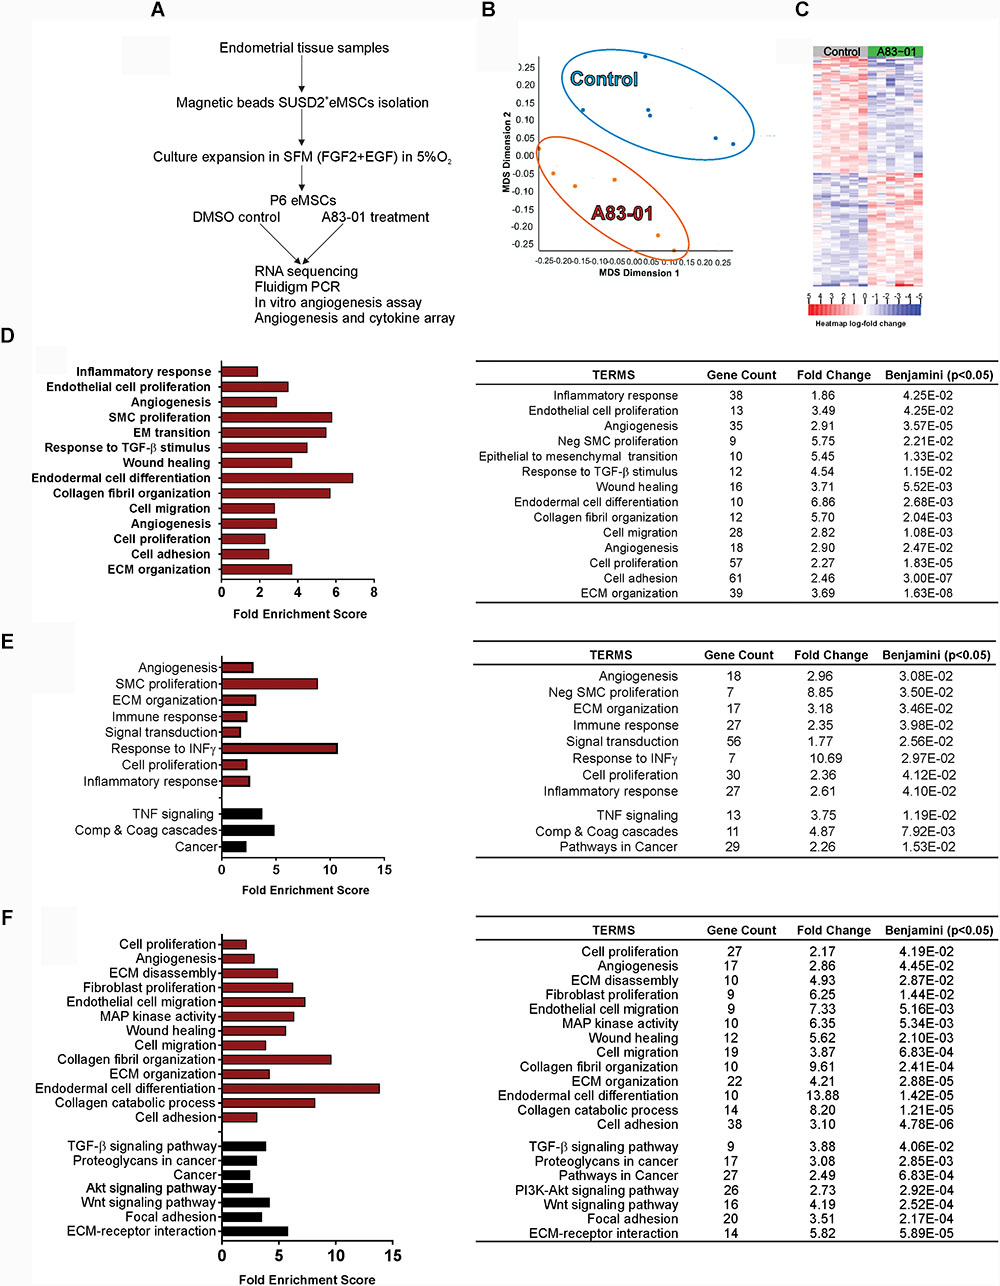 Frontiers | The Transcriptome of Human Endometrial